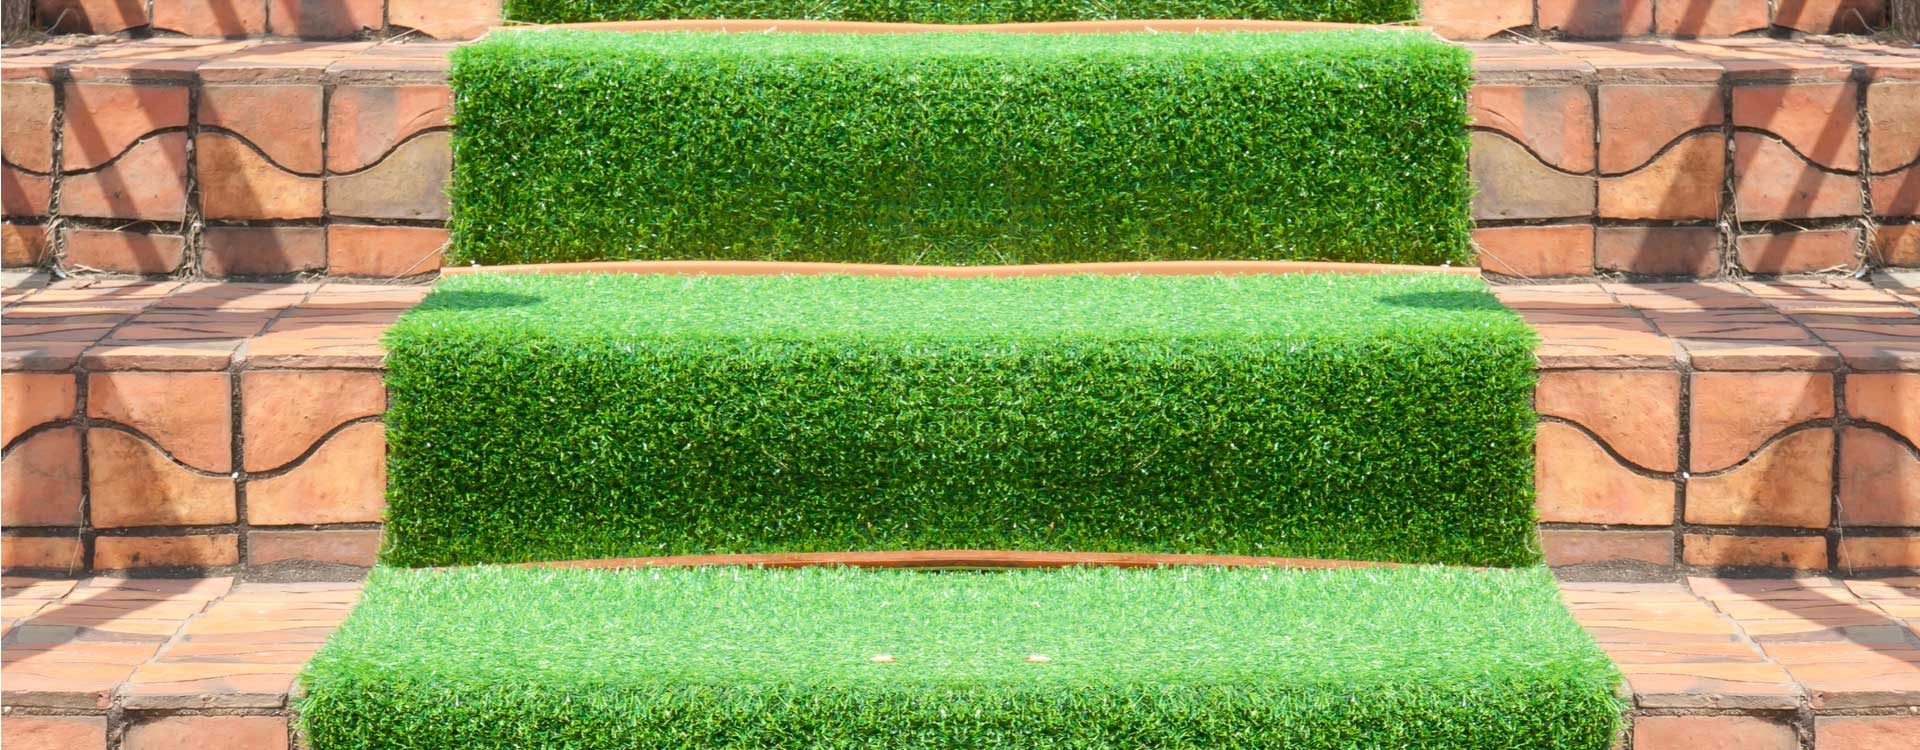 artificial grass for stairs or steps